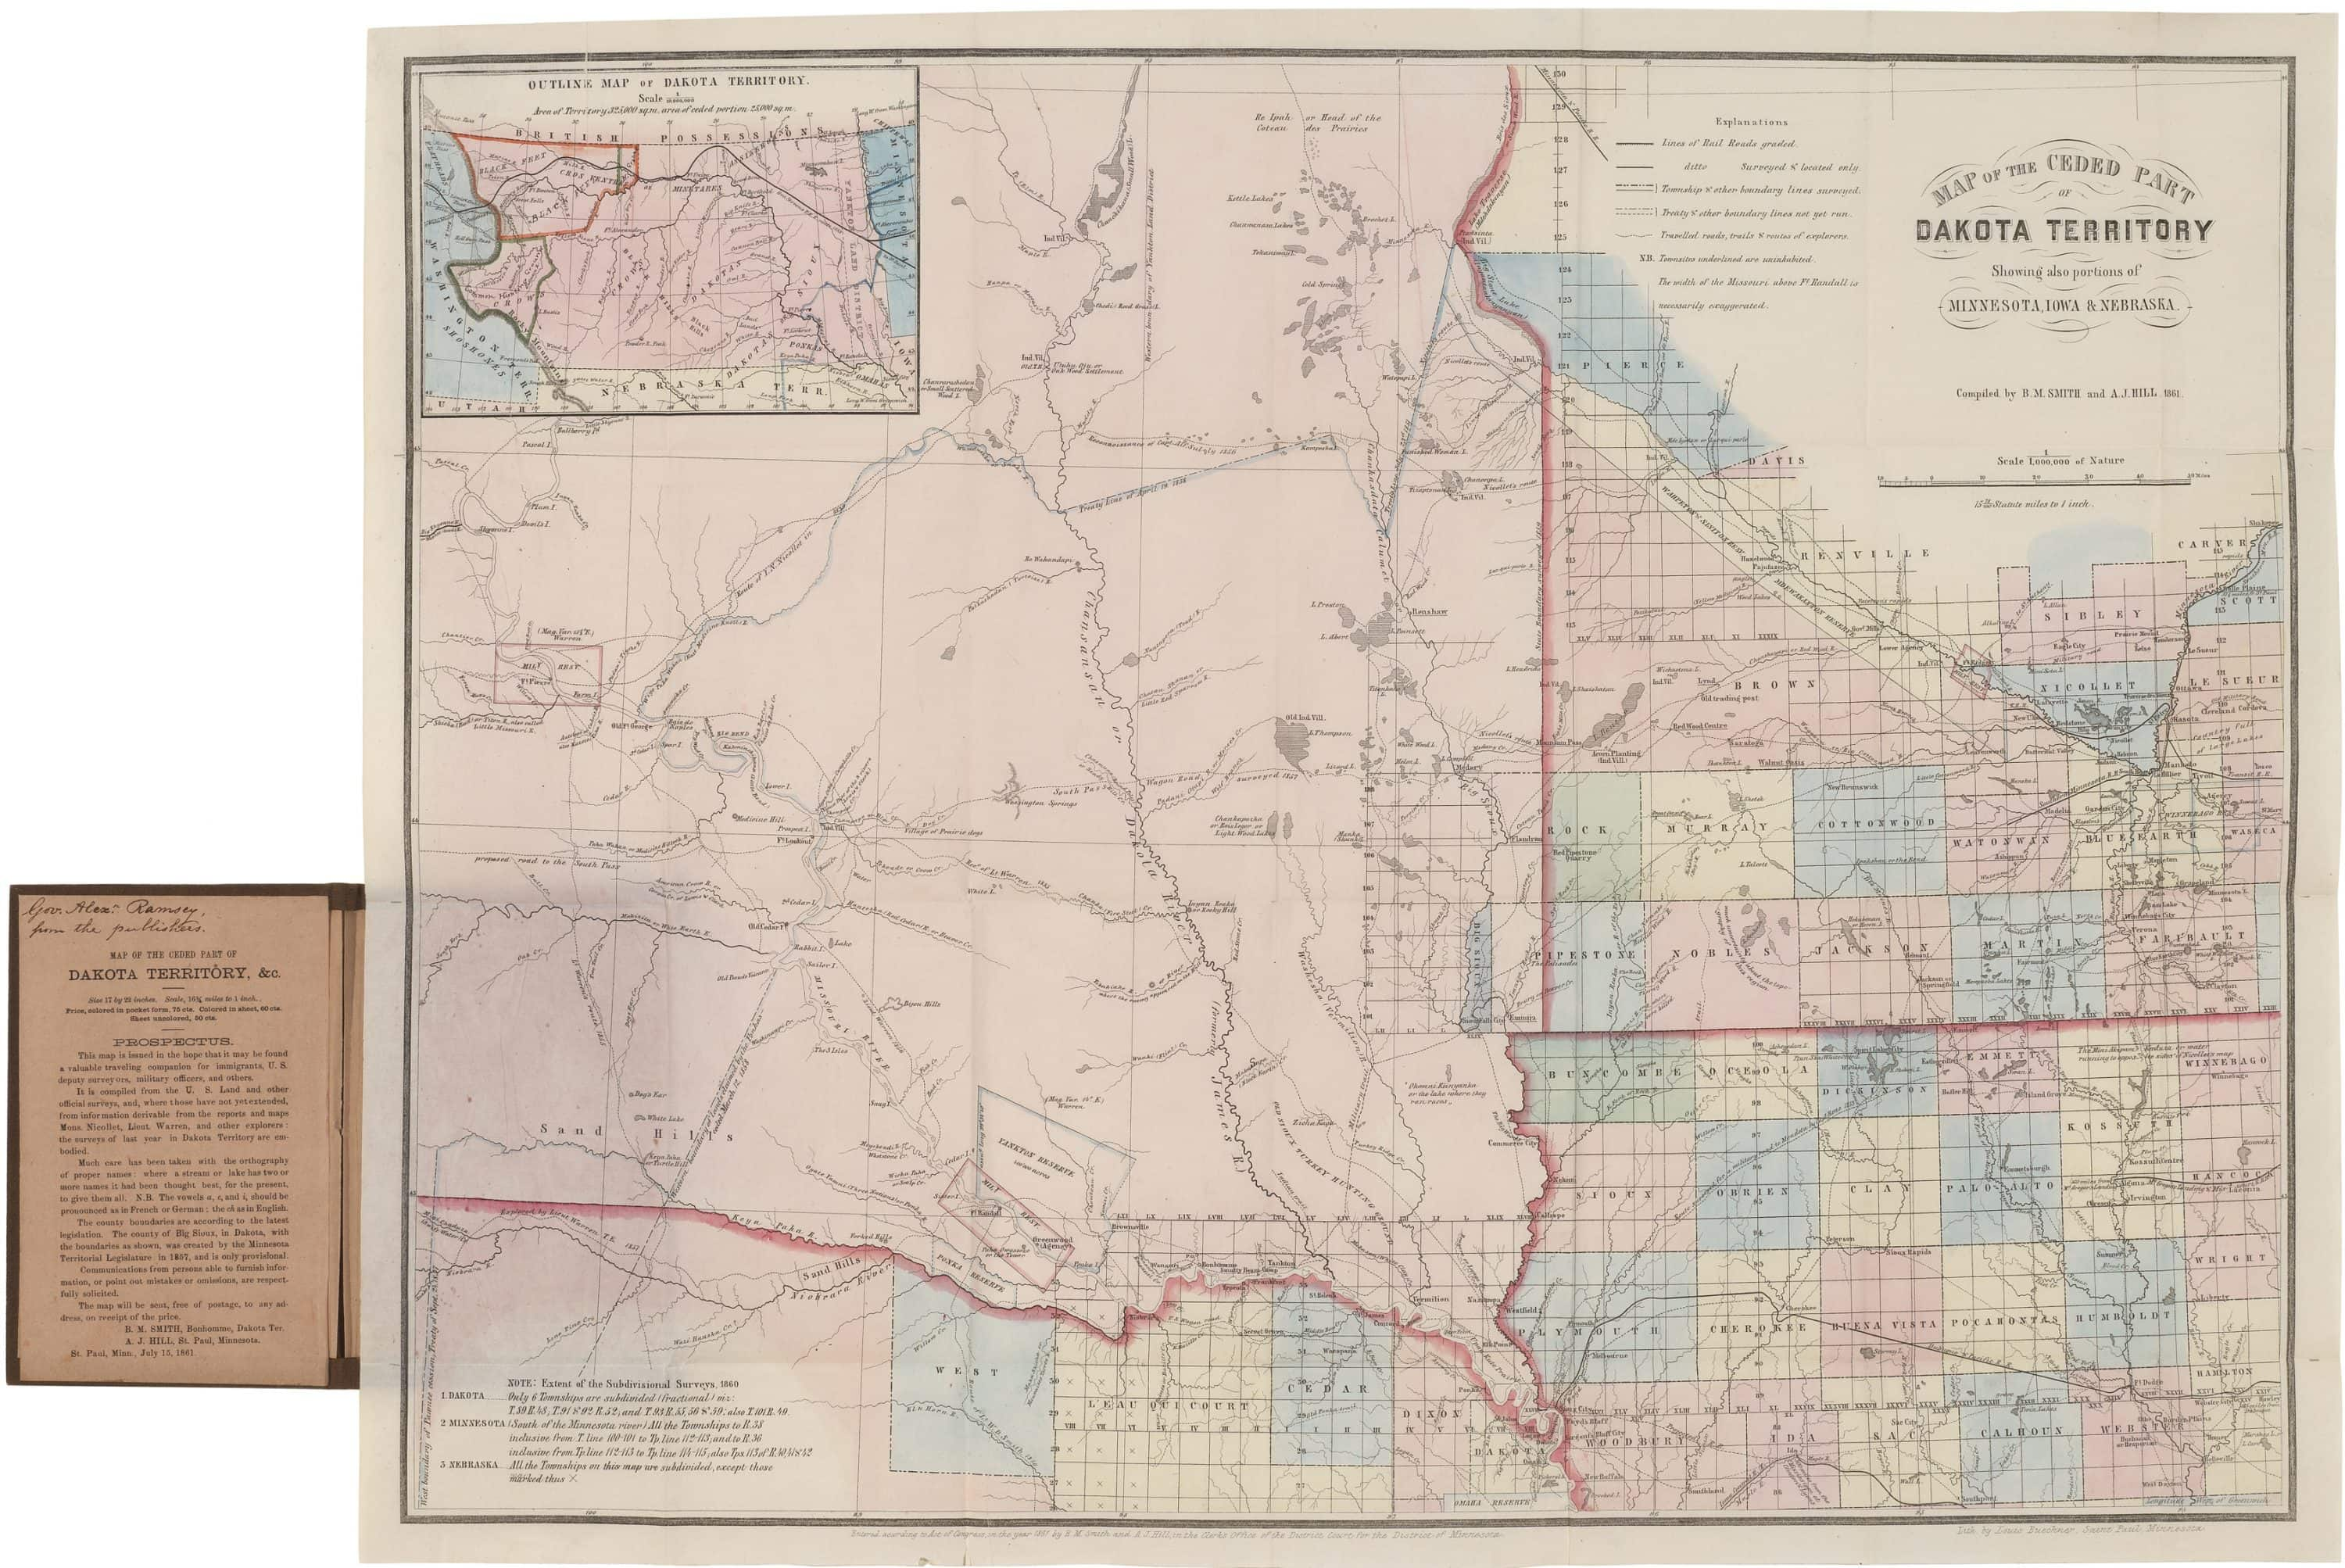 With the first printed map of Dakota Territory, showing